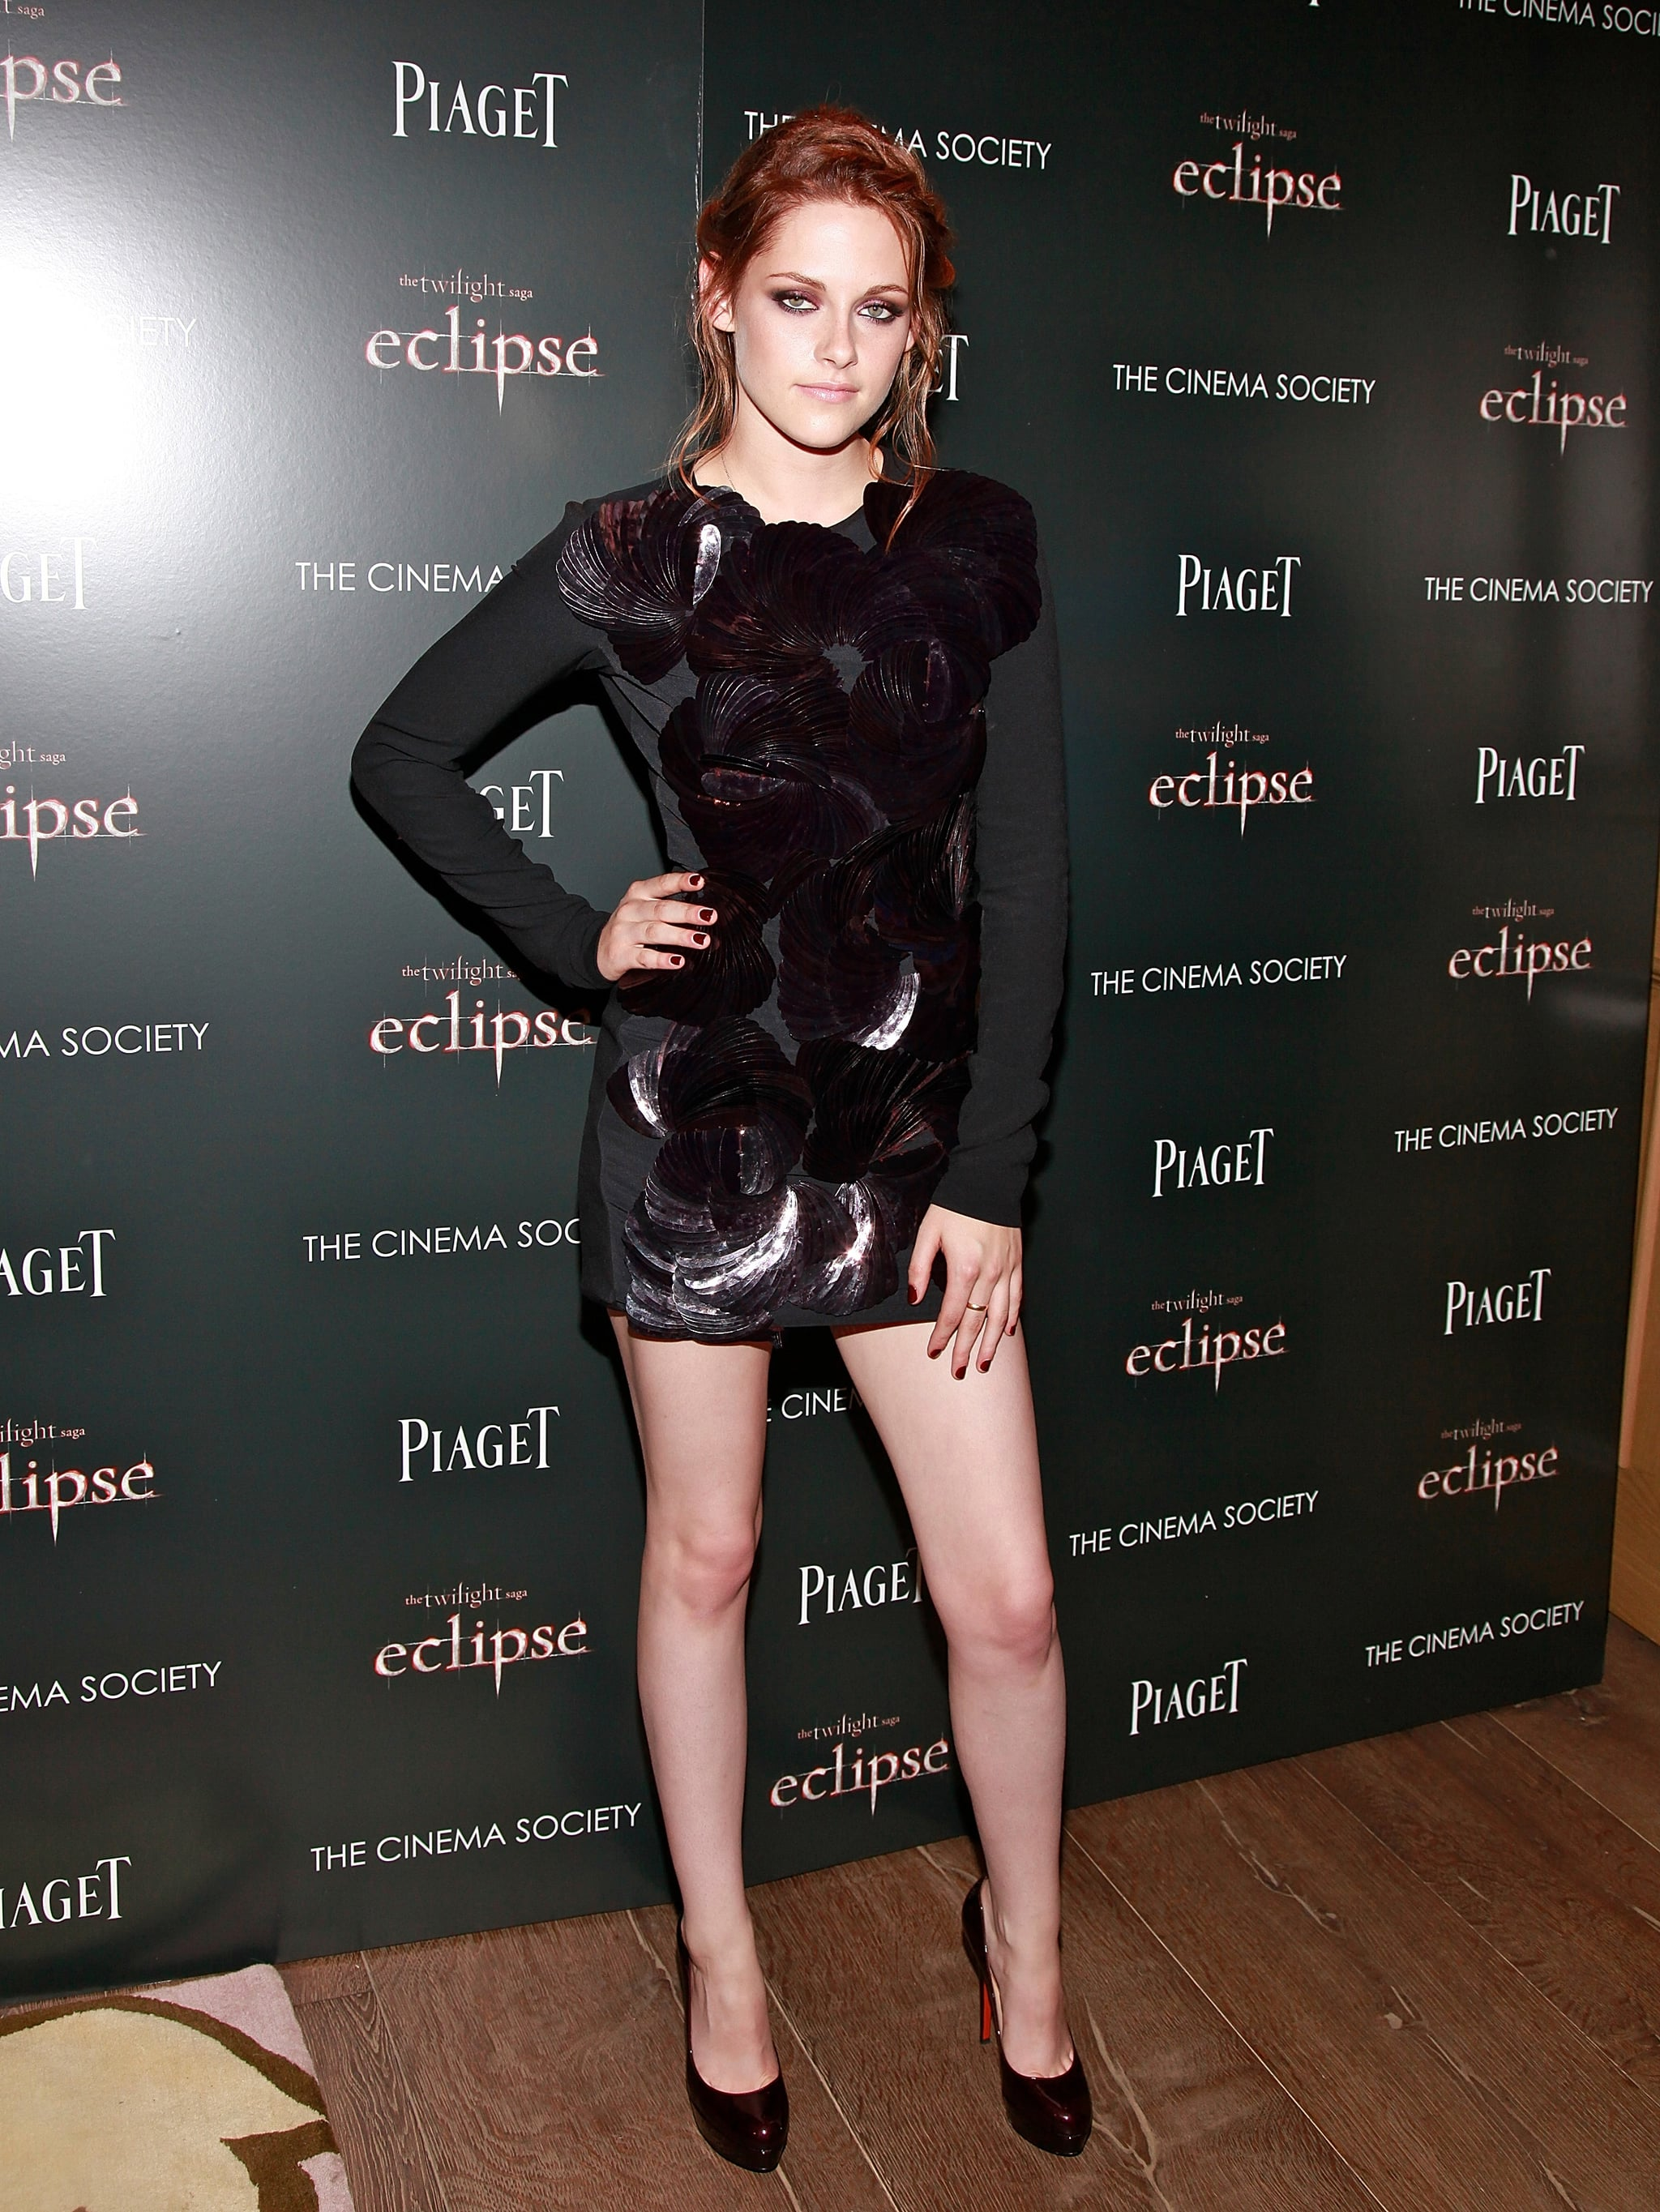 A moody RM by Roland Mouret mini, featuring three-dimensional add-ons, set tongues wagging for the New York screening of Eclipse in 2010.